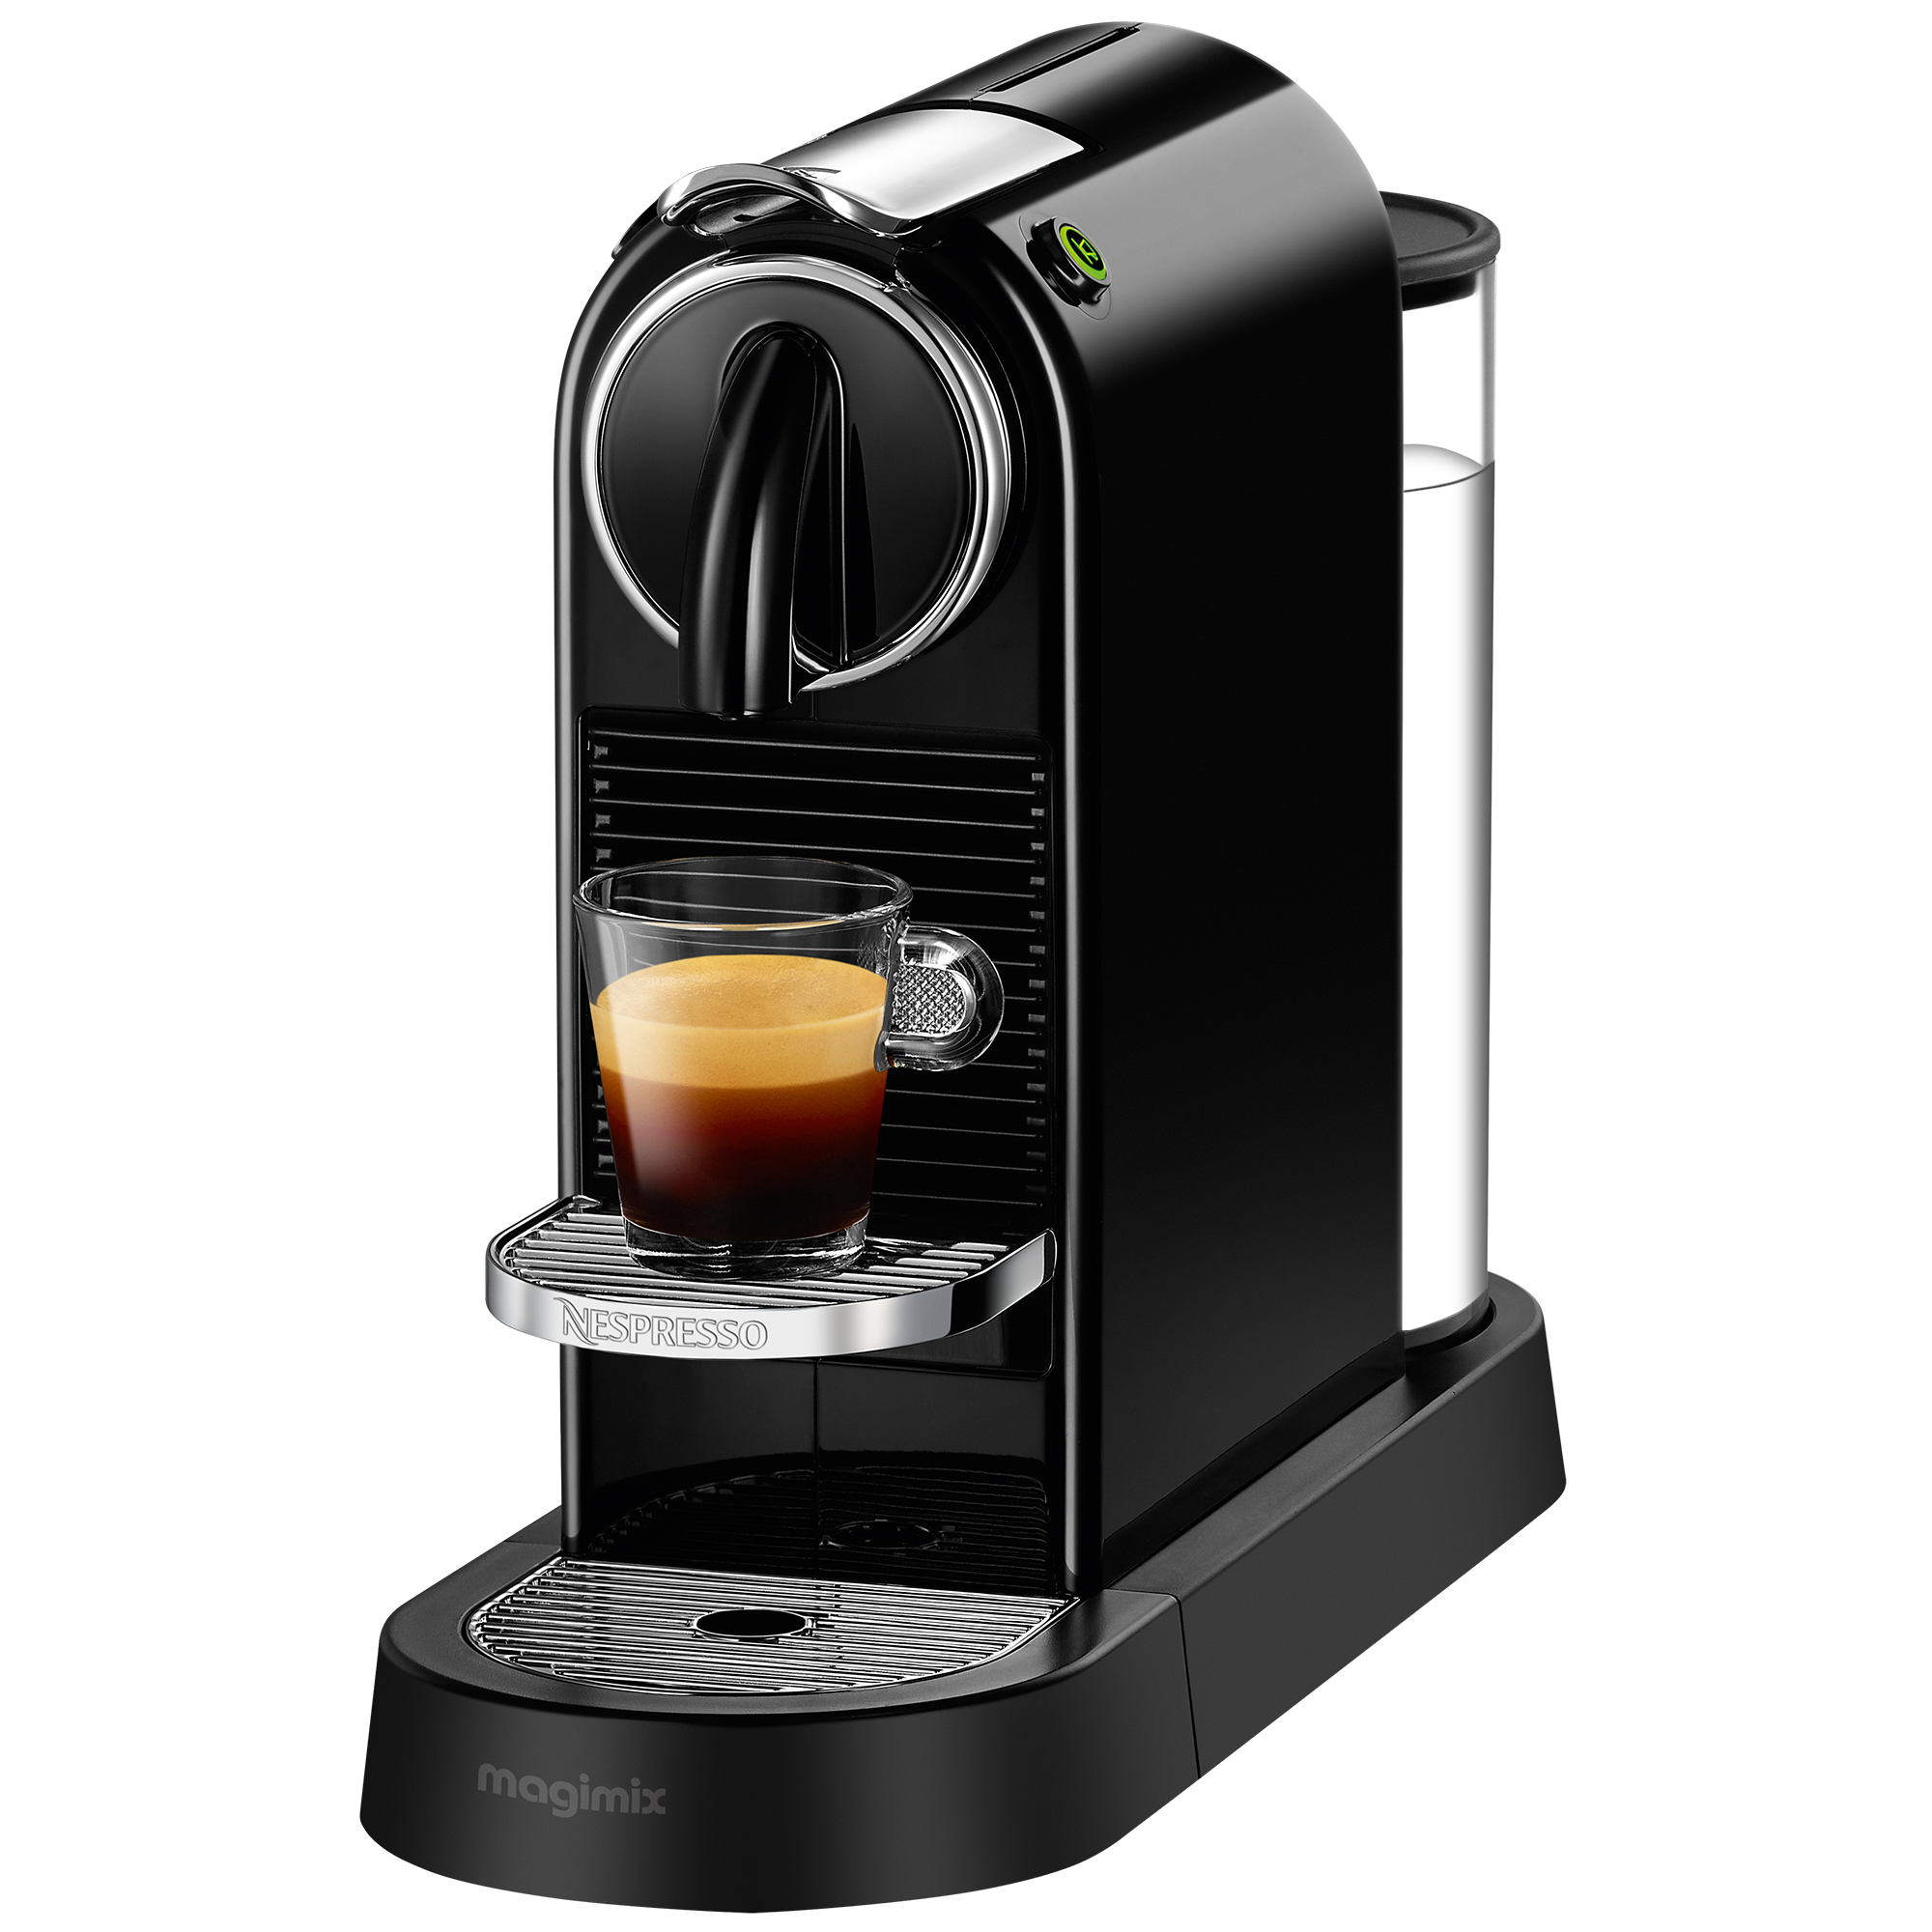 dtartrage magimix expresso machine caf m citiz nespresso magimix with dtartrage magimix. Black Bedroom Furniture Sets. Home Design Ideas